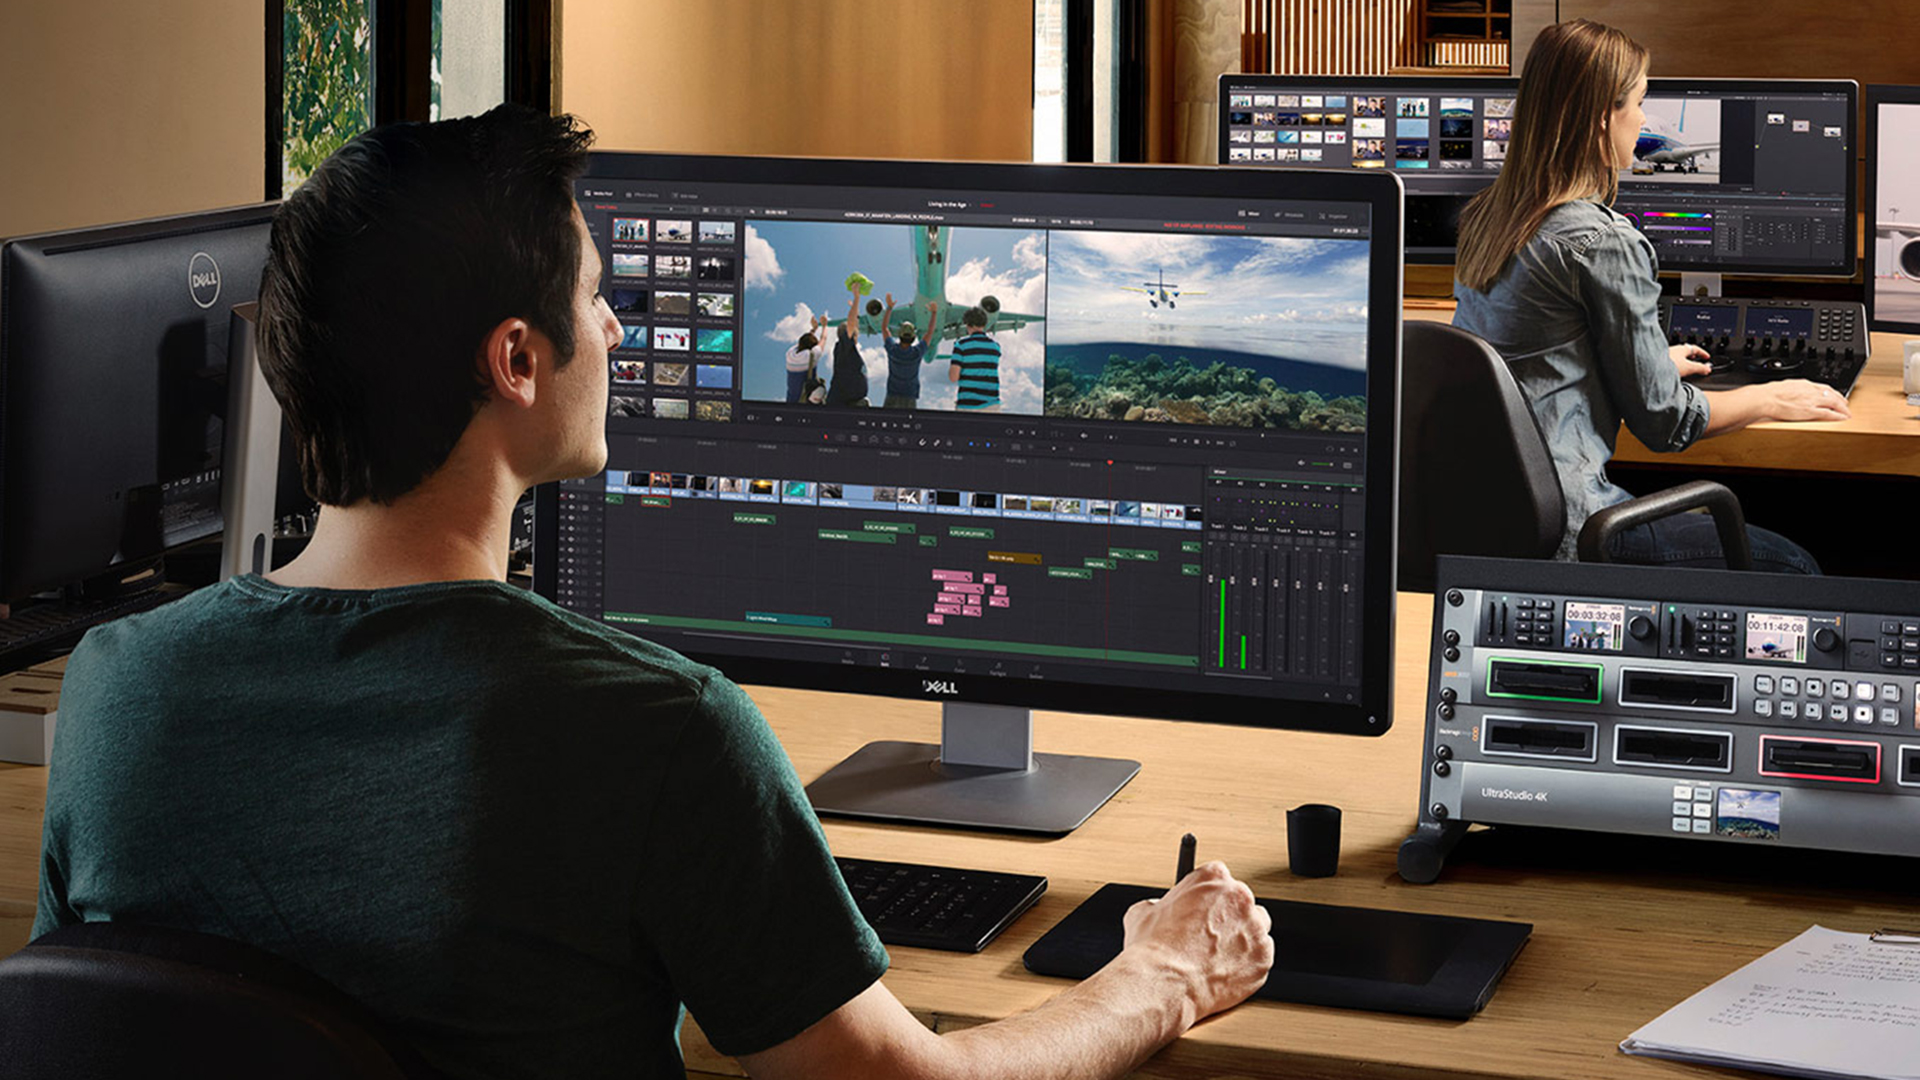 DaVinci Resolve 15 de Blackmagic Design ha finalizado su etapa Beta